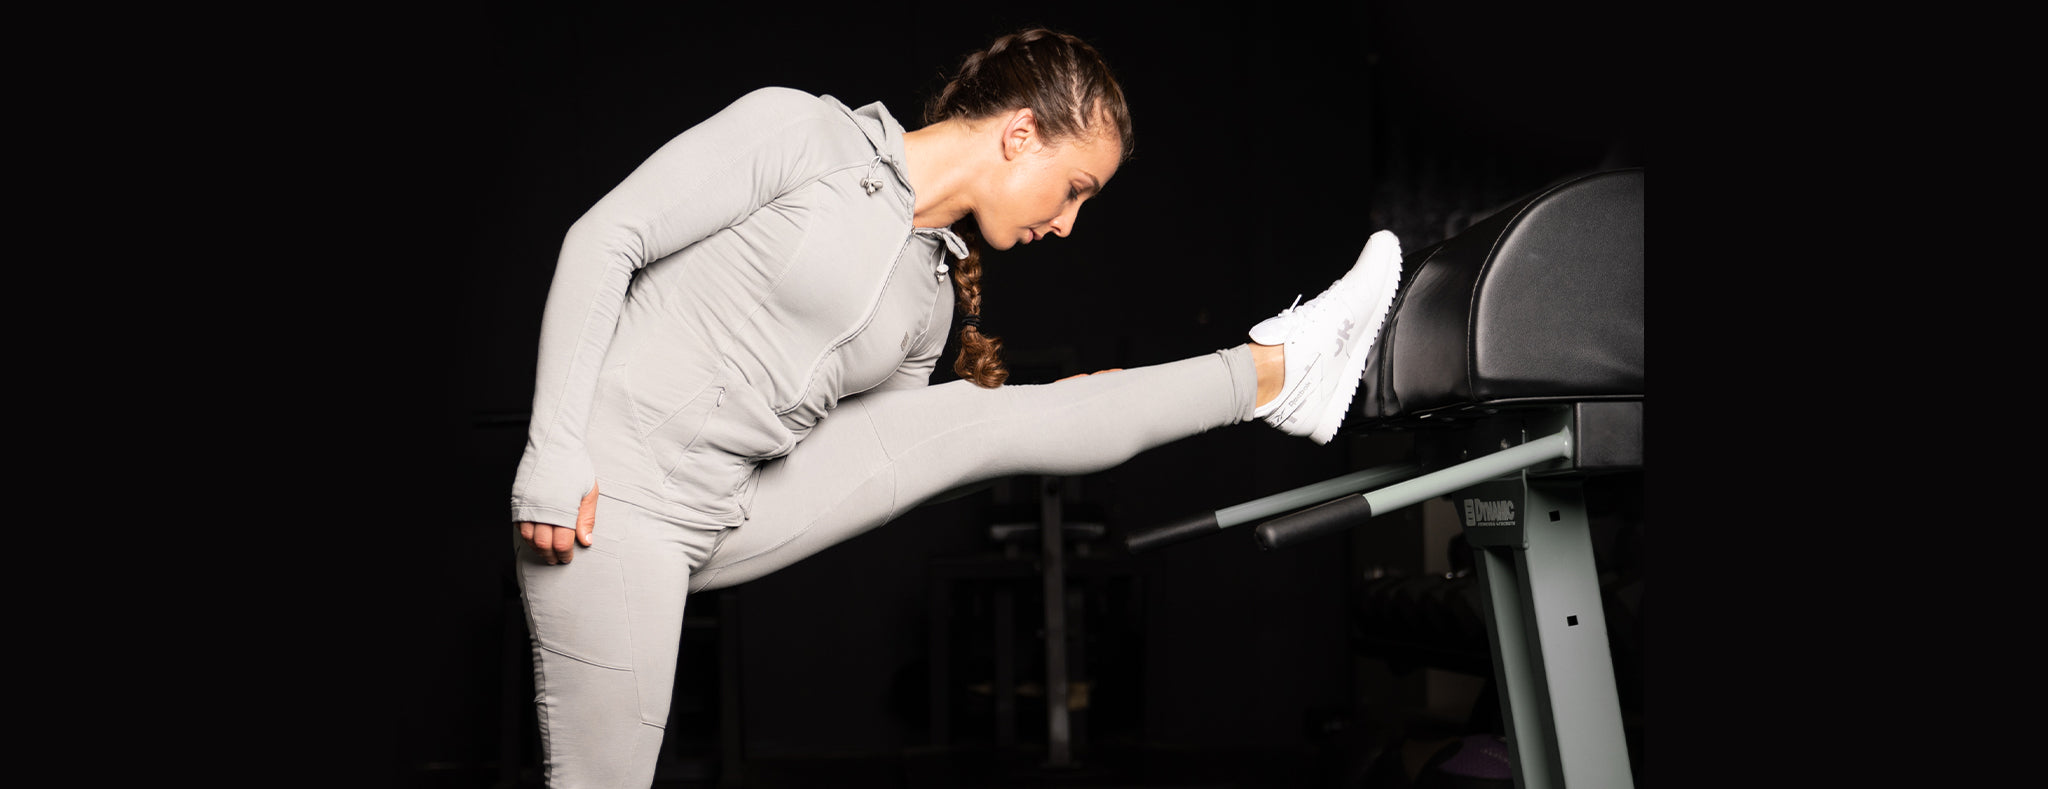 STRETCHING AND ACTIVE RECOVERY METHODS